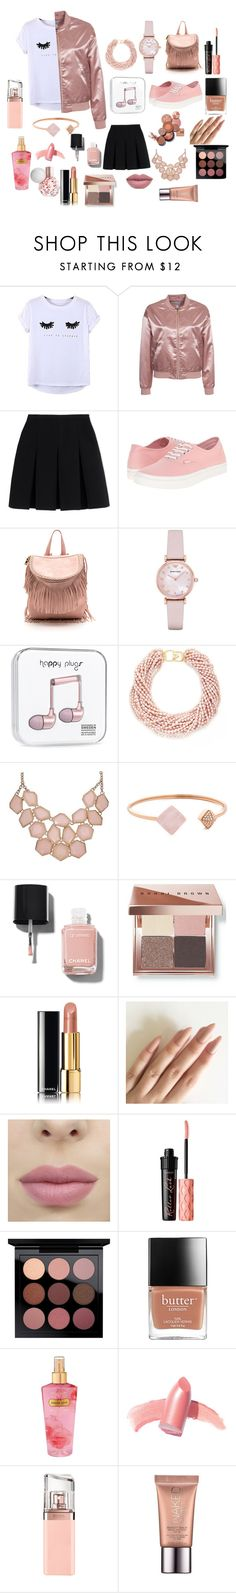 """My obsession"" by kyra-carbee ❤ liked on Polyvore featuring Chicnova Fashion, NLY Trend, Alexander Wang, Vans, Emporio Armani, Kenneth Jay Lane, Michael Kors, Chanel, Bobbi Brown Cosmetics and Benefit"